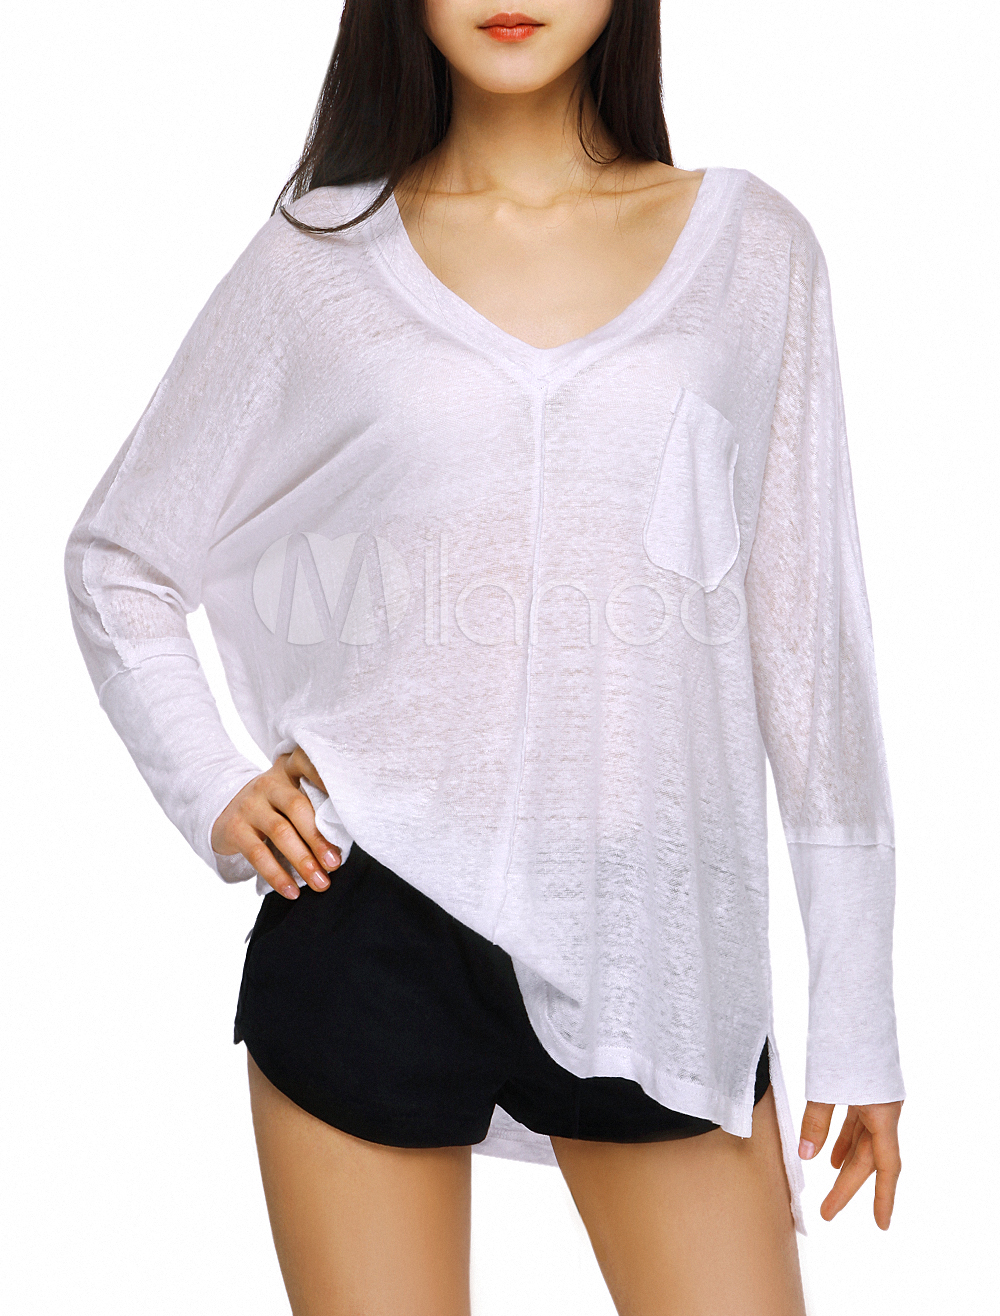 8b8f94bc82 White Linen Solid Color High Low Design Long Sleeves V-Neck T-shirt For  Women - Milanoo.com